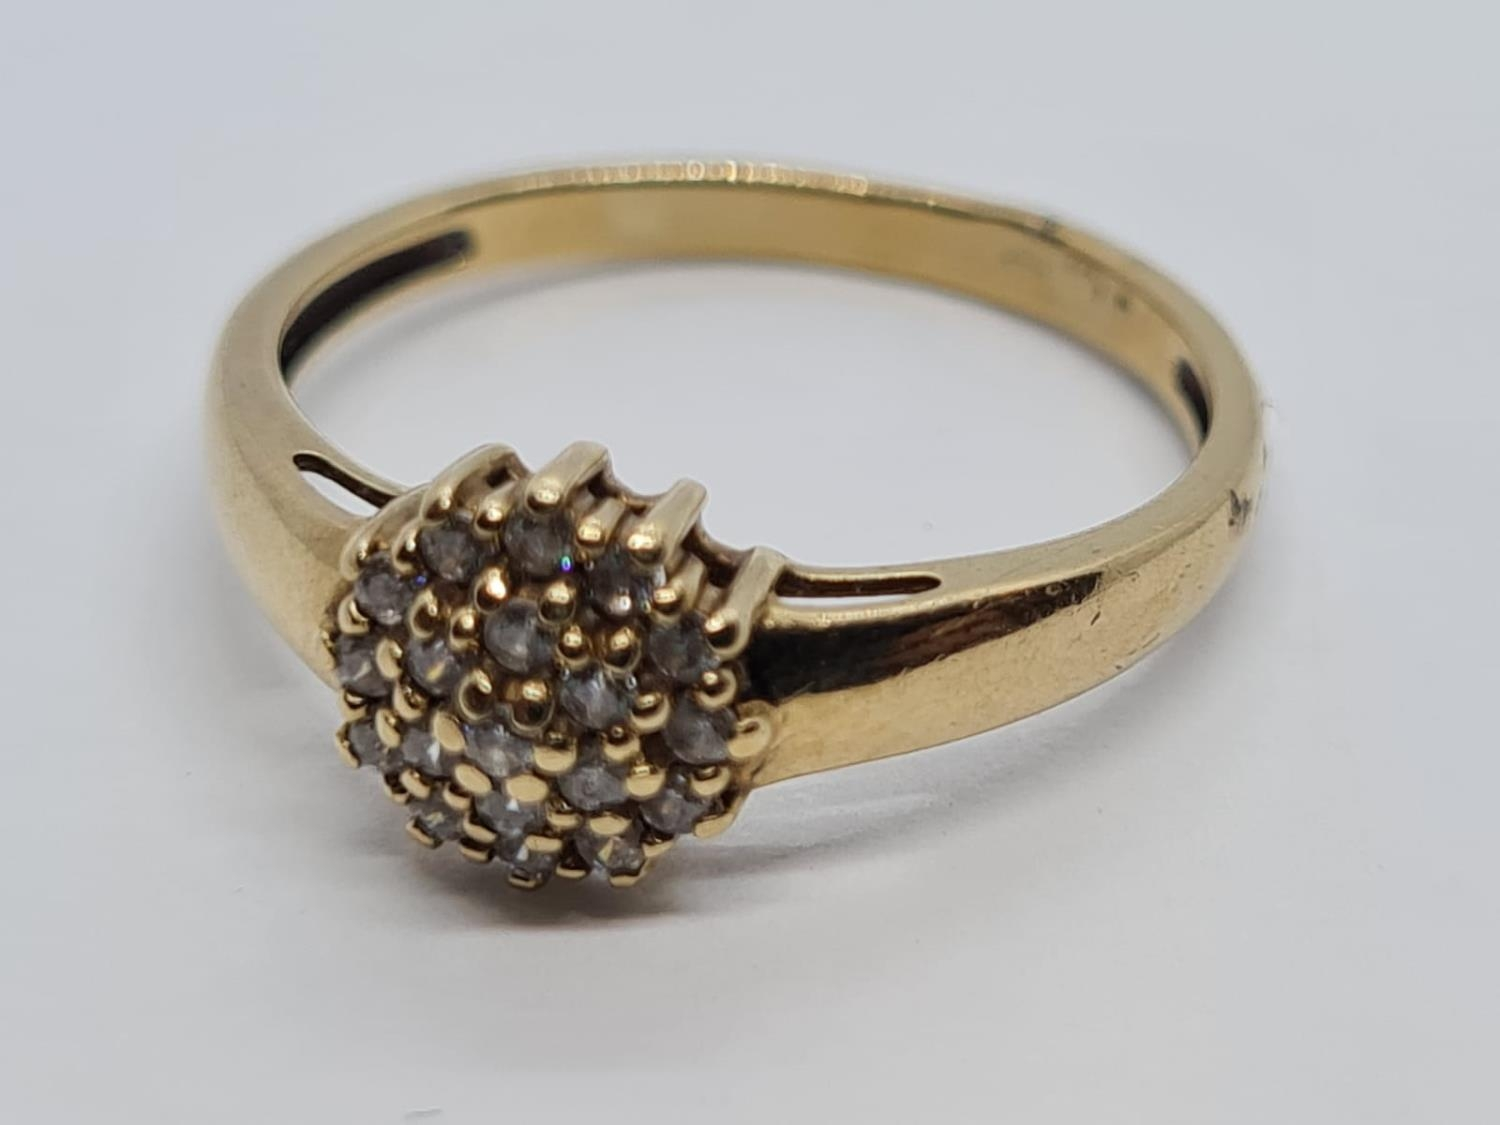 9K YELLOW GOLD CZ STONE SET CLUSTER RING WEIGHT 1.7G SIZE M - Image 2 of 4